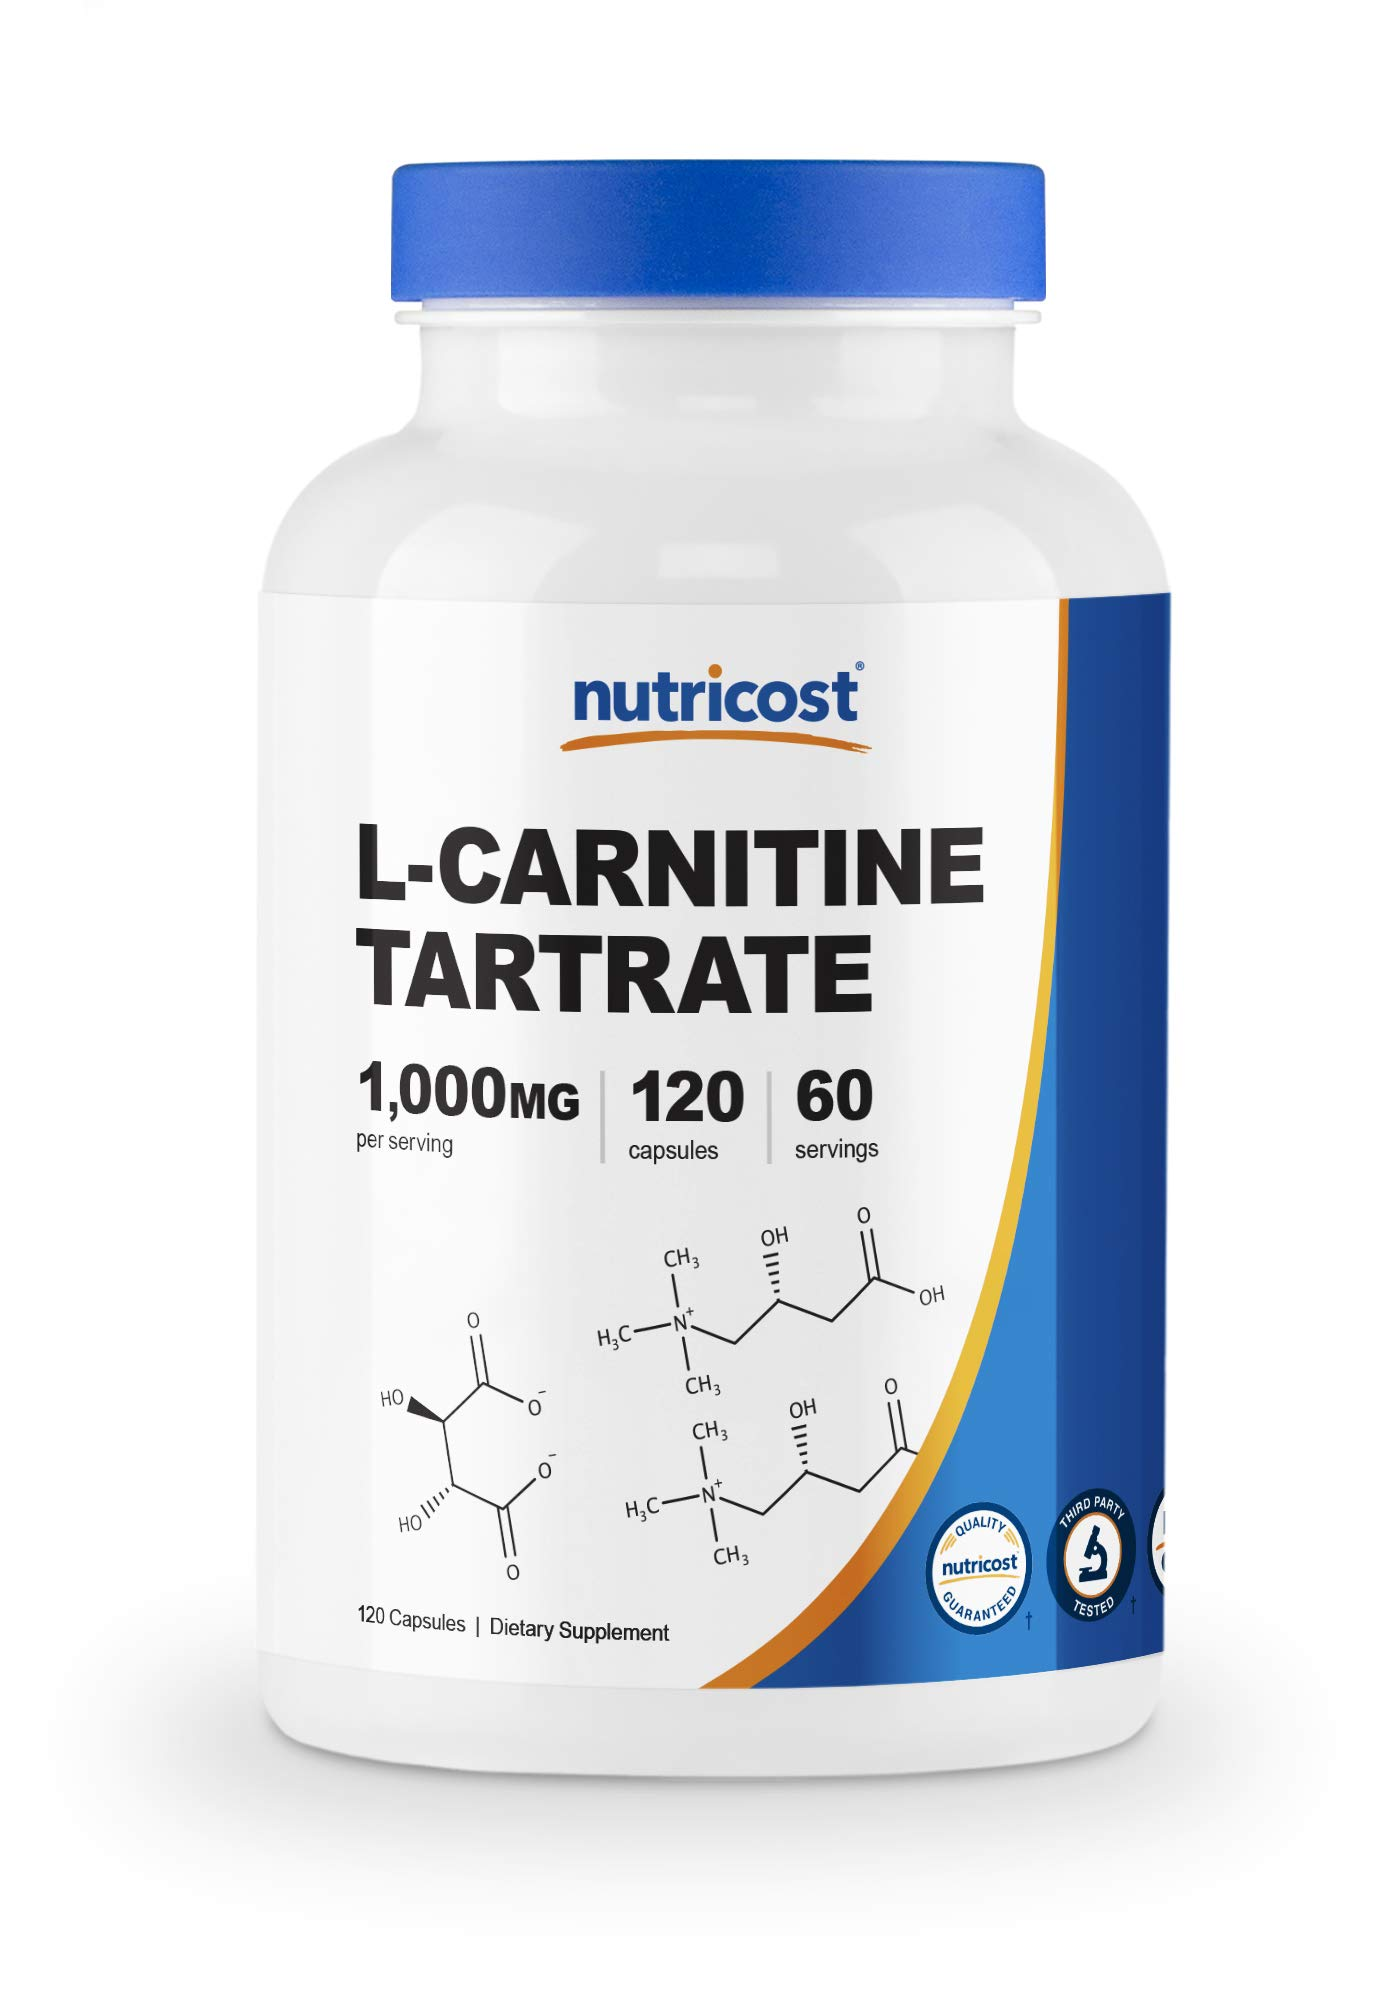 Nutricost L-Carnitine Tartrate 500mg, 120 Capsules - 1000mg Per Serving (60 Servings)